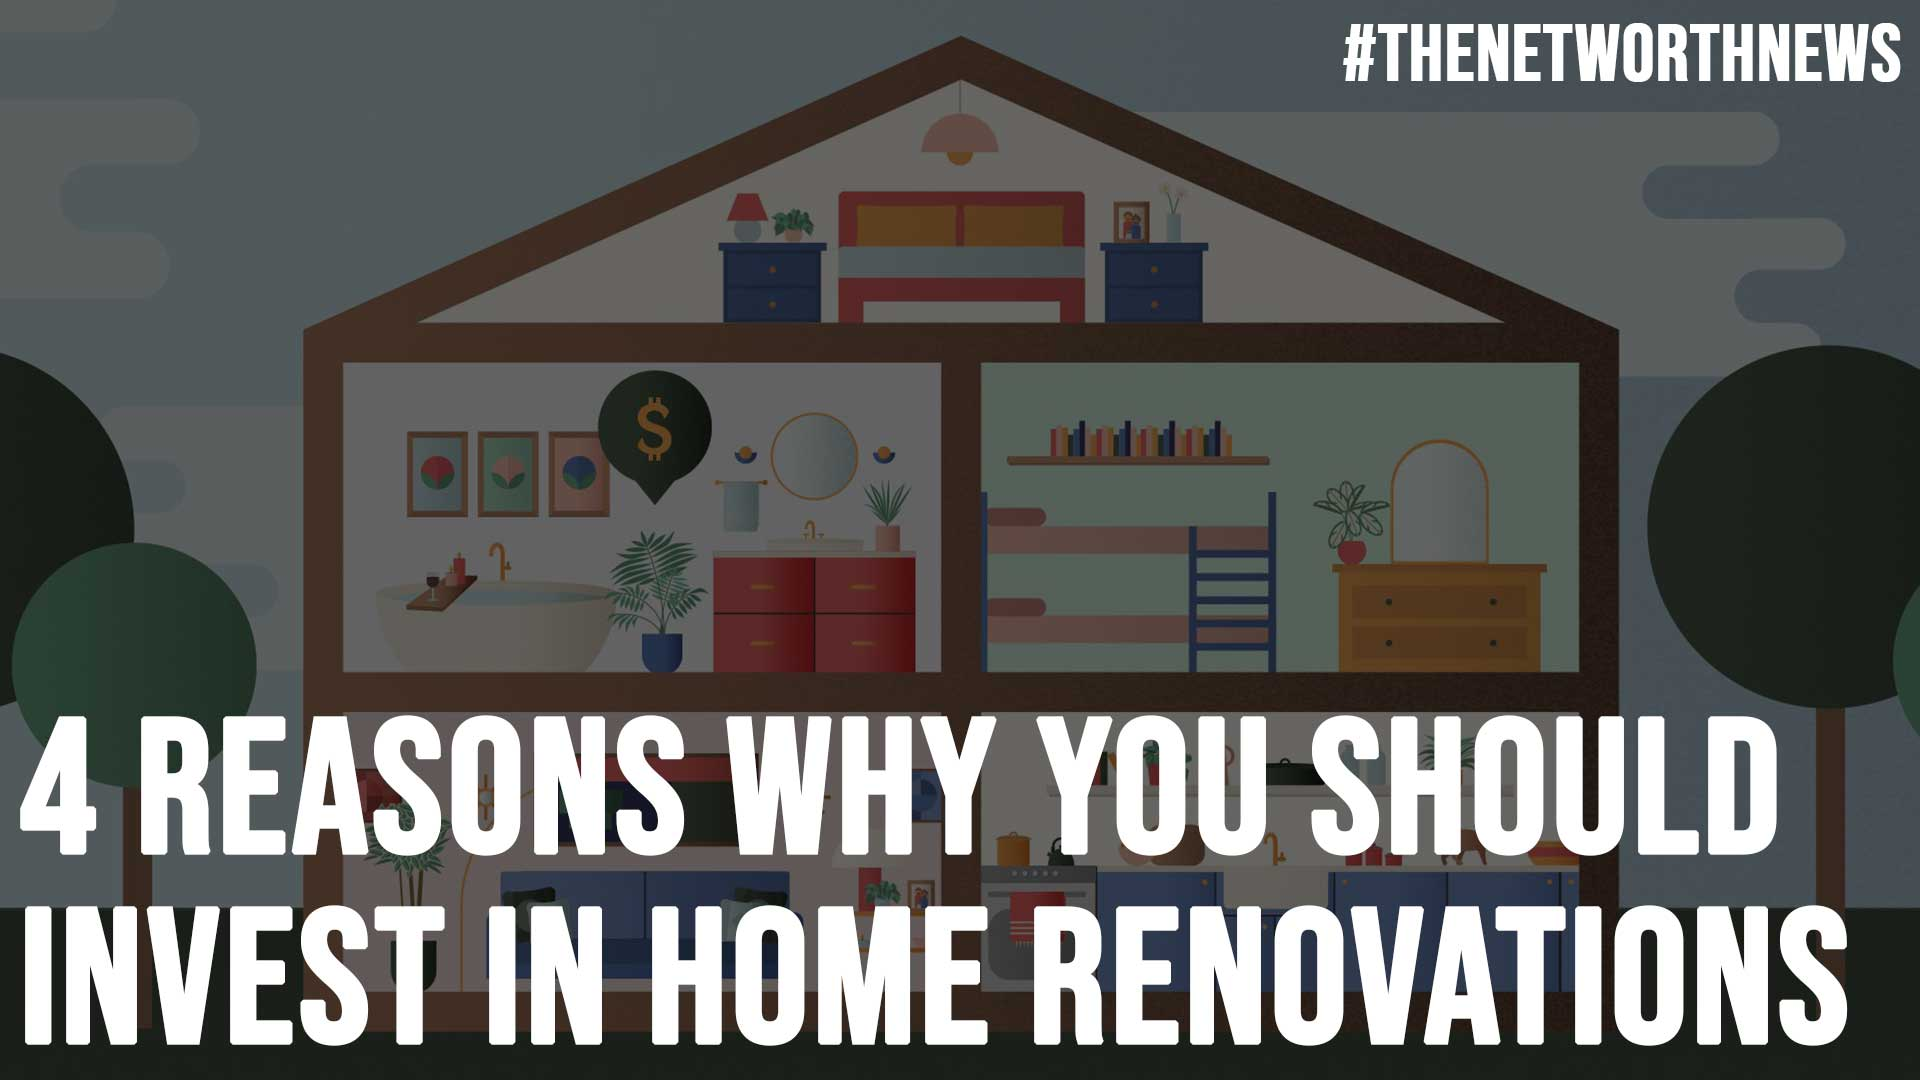 4 Reasons Why You Should Invest in Home Renovations